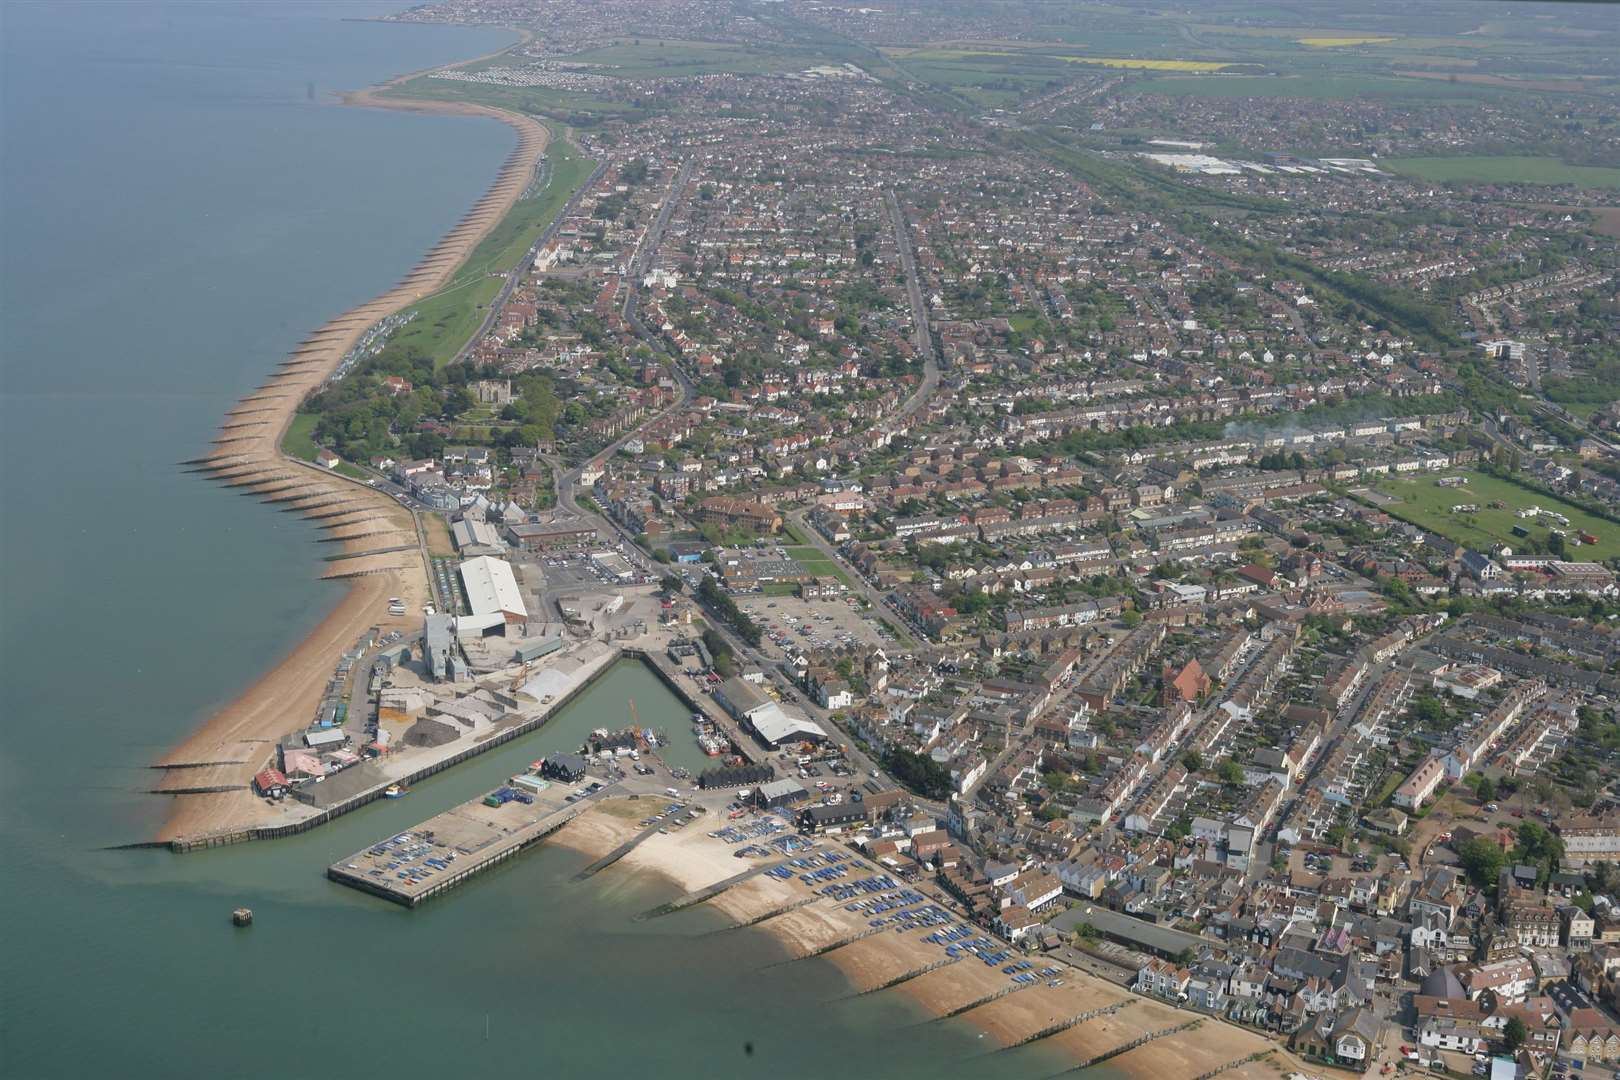 Whitstable is another popular Airbnb destination, with over 300 units available, compared to just 17 rental units on Rightmove.